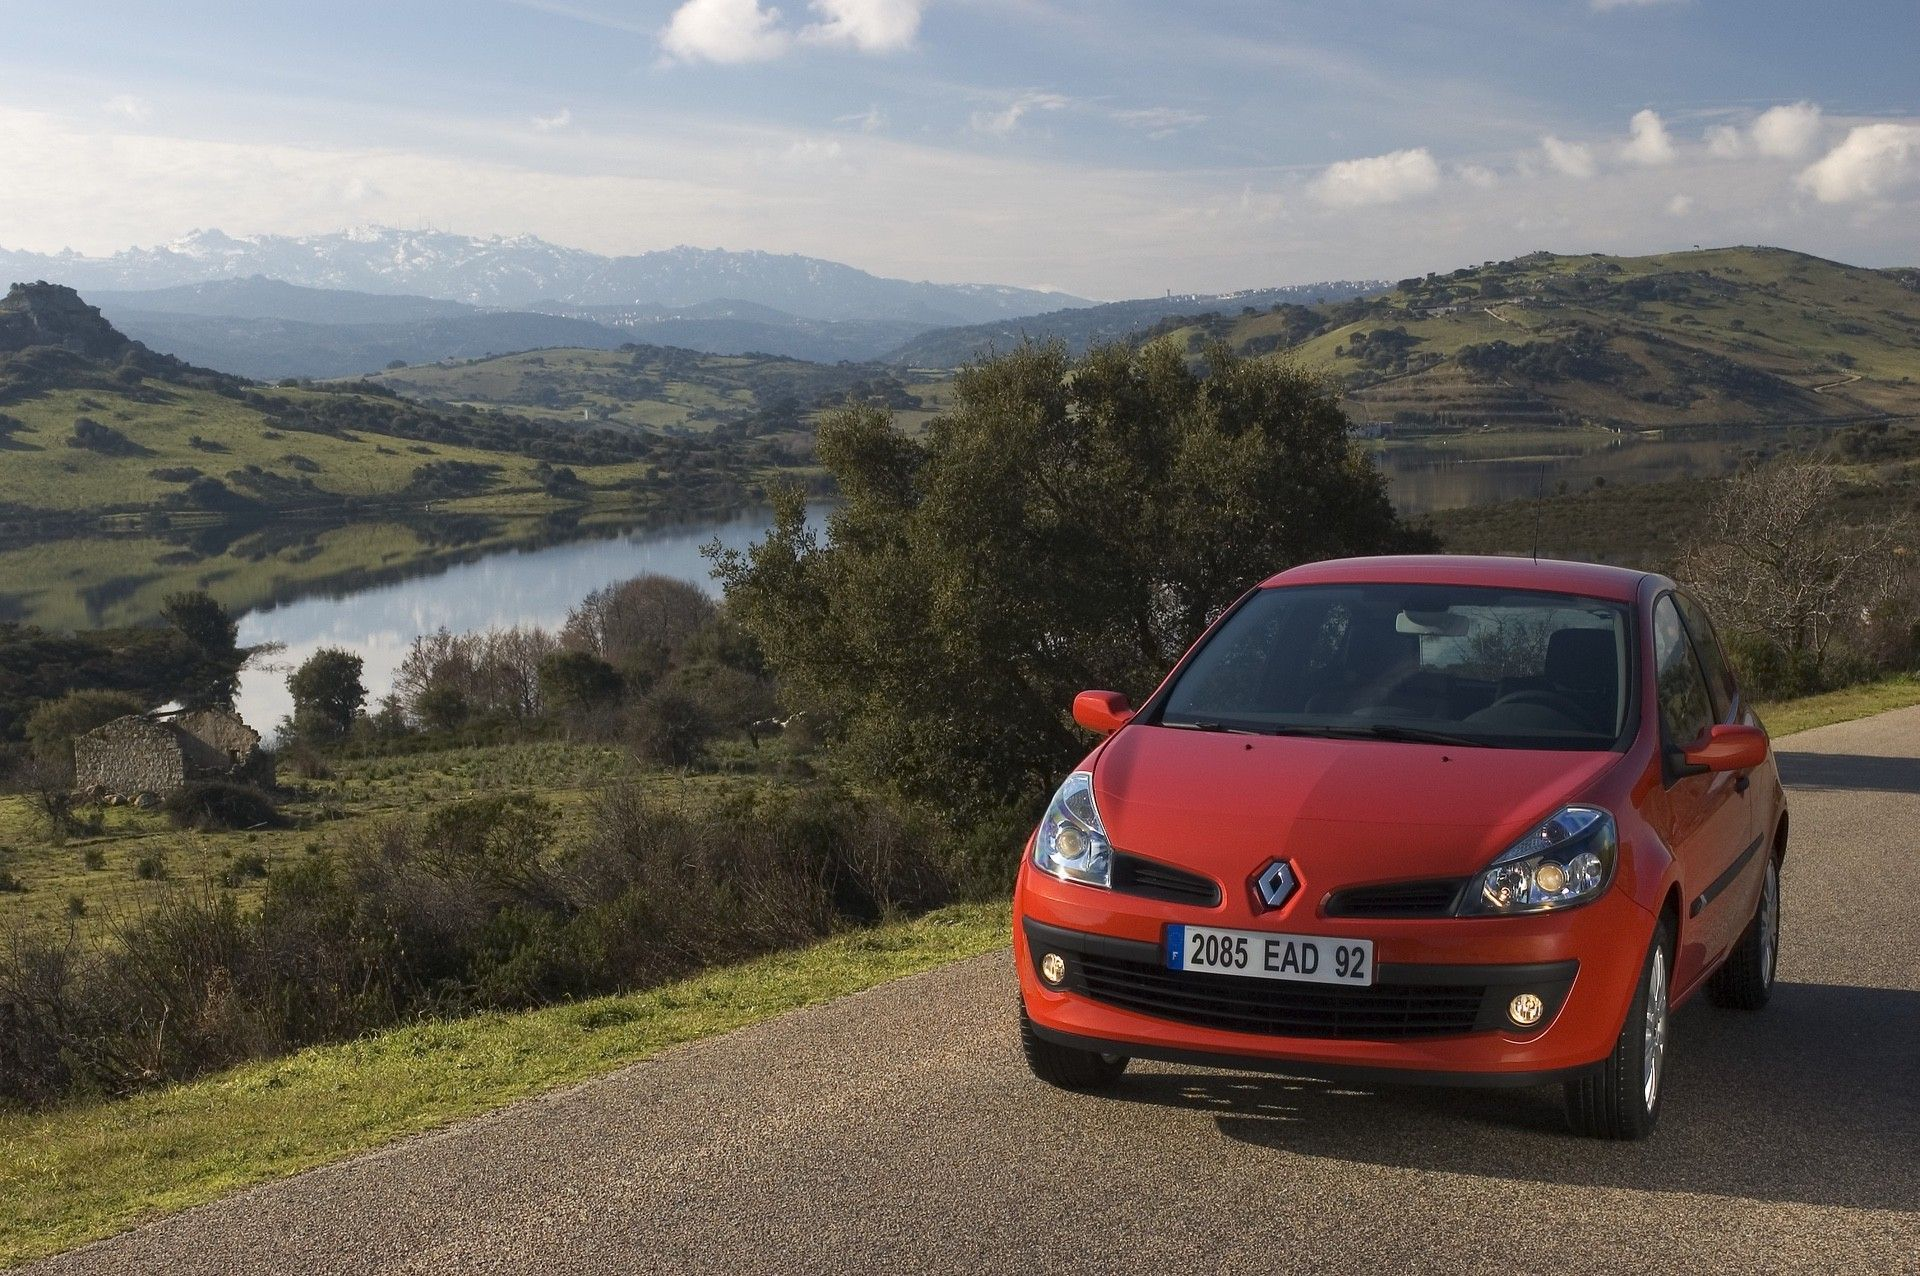 2020-30-years-of-Renault-CLIO-Renault-CLIO-III-2005-2012-7